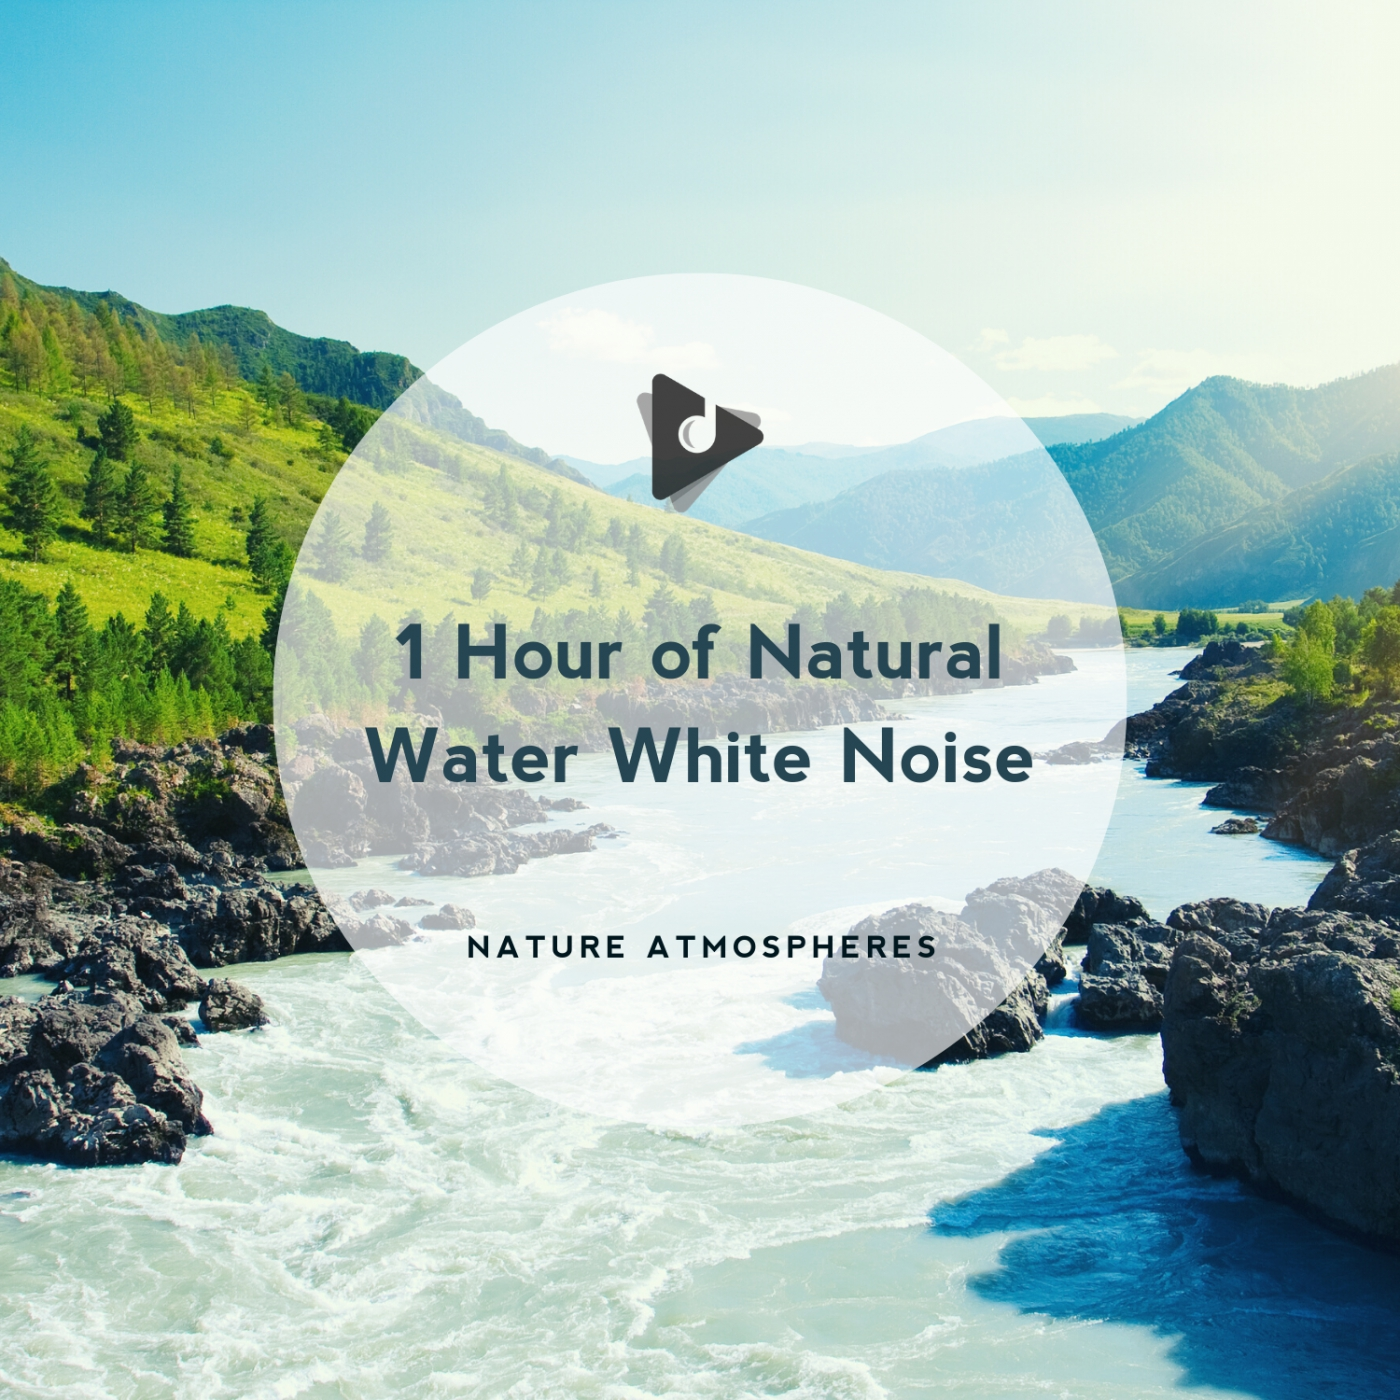 1 Hour of Natural Water White Noise